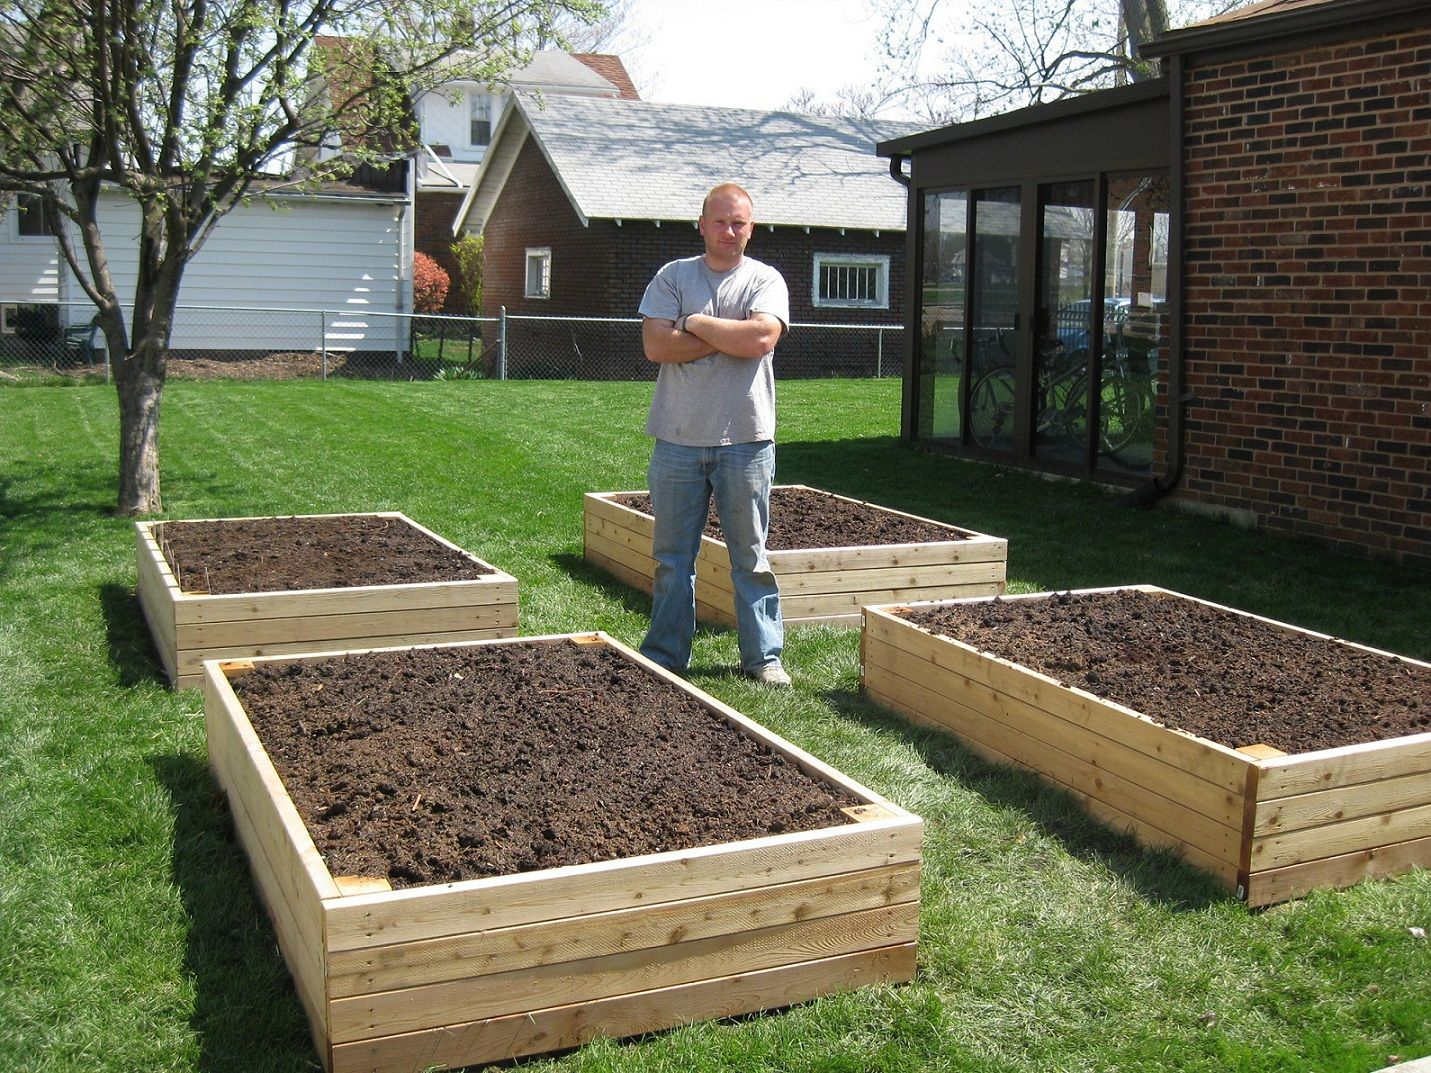 Garden Box Design Ideas garden box design ideas furthermore raised garden beds on legs besides Pallet Vegetable Garden Box Ideas